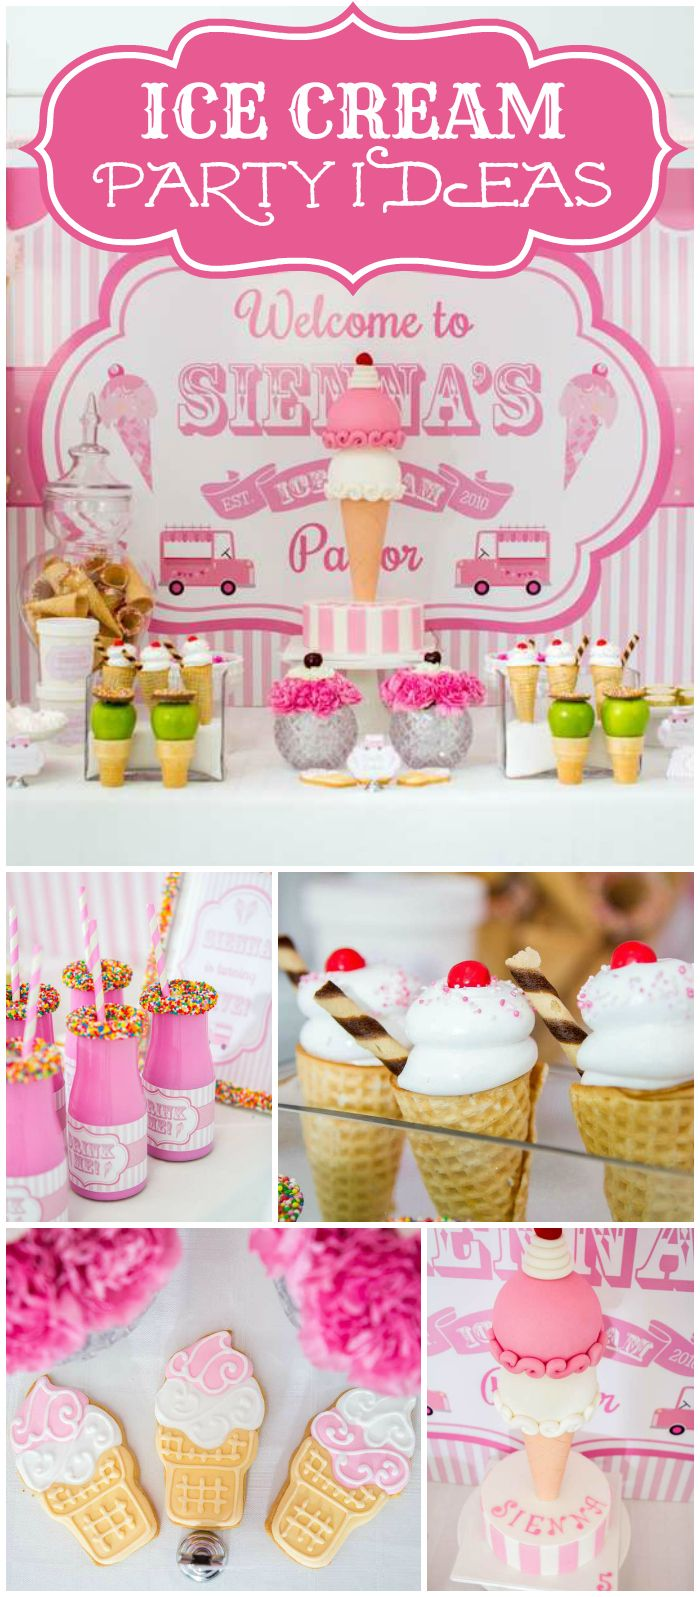 This pink and white ice cream party has green apple accents! See more party planning ideas at CatchMyParty.com!